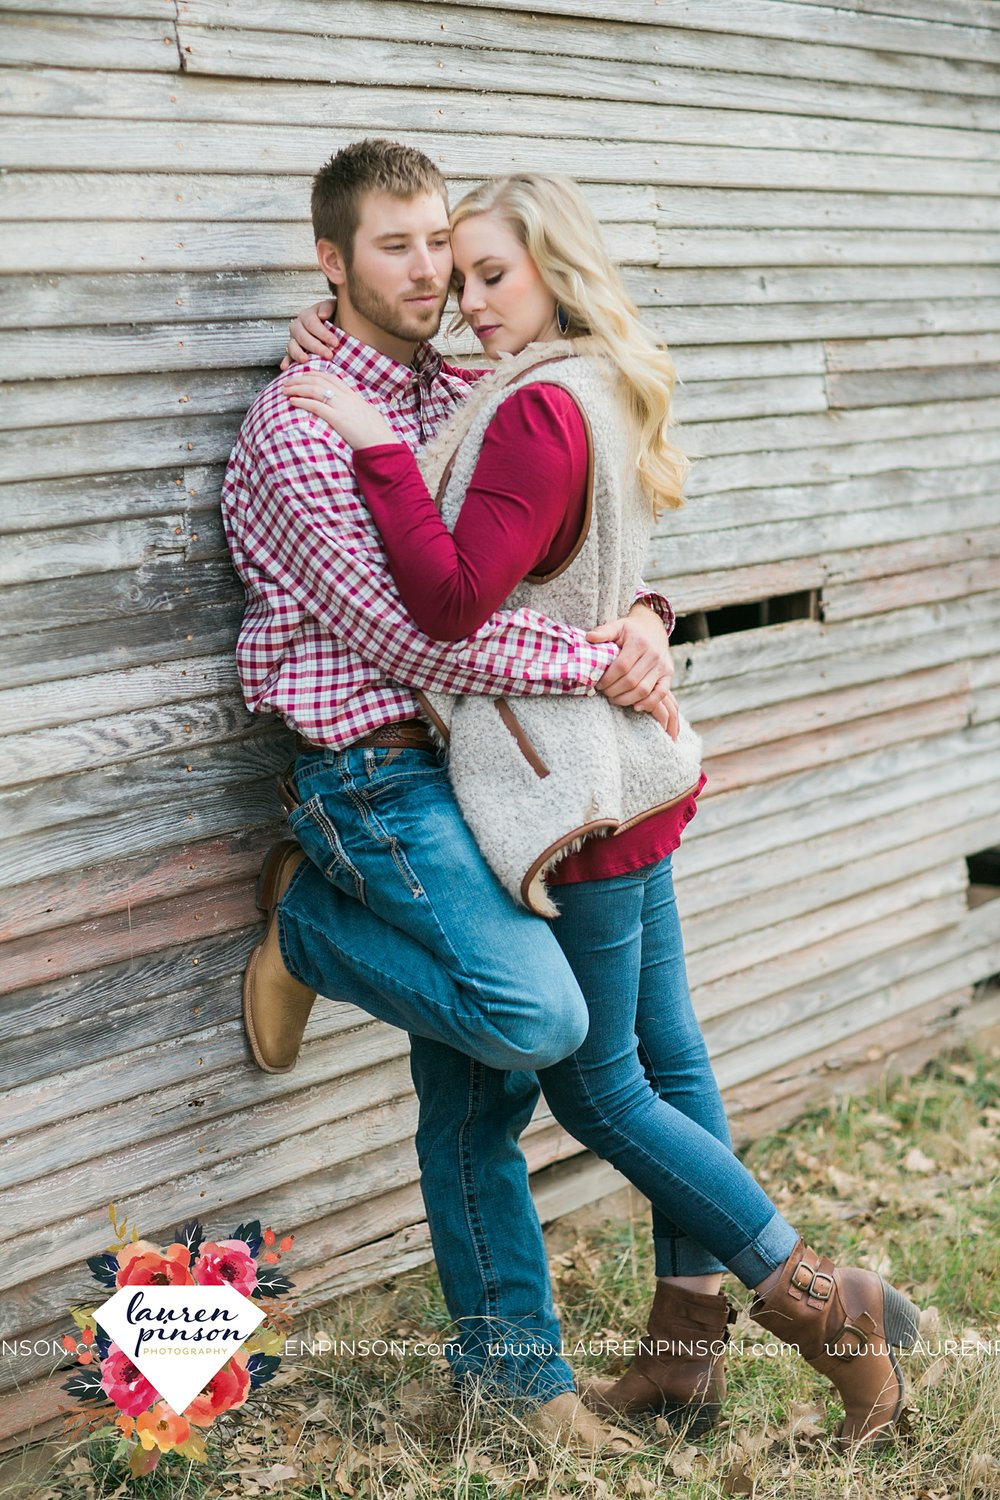 wichita-falls-texas-weddiing-photographer-engagement-session-bowie-texas-old-barn-country-hunting_4021.jpg